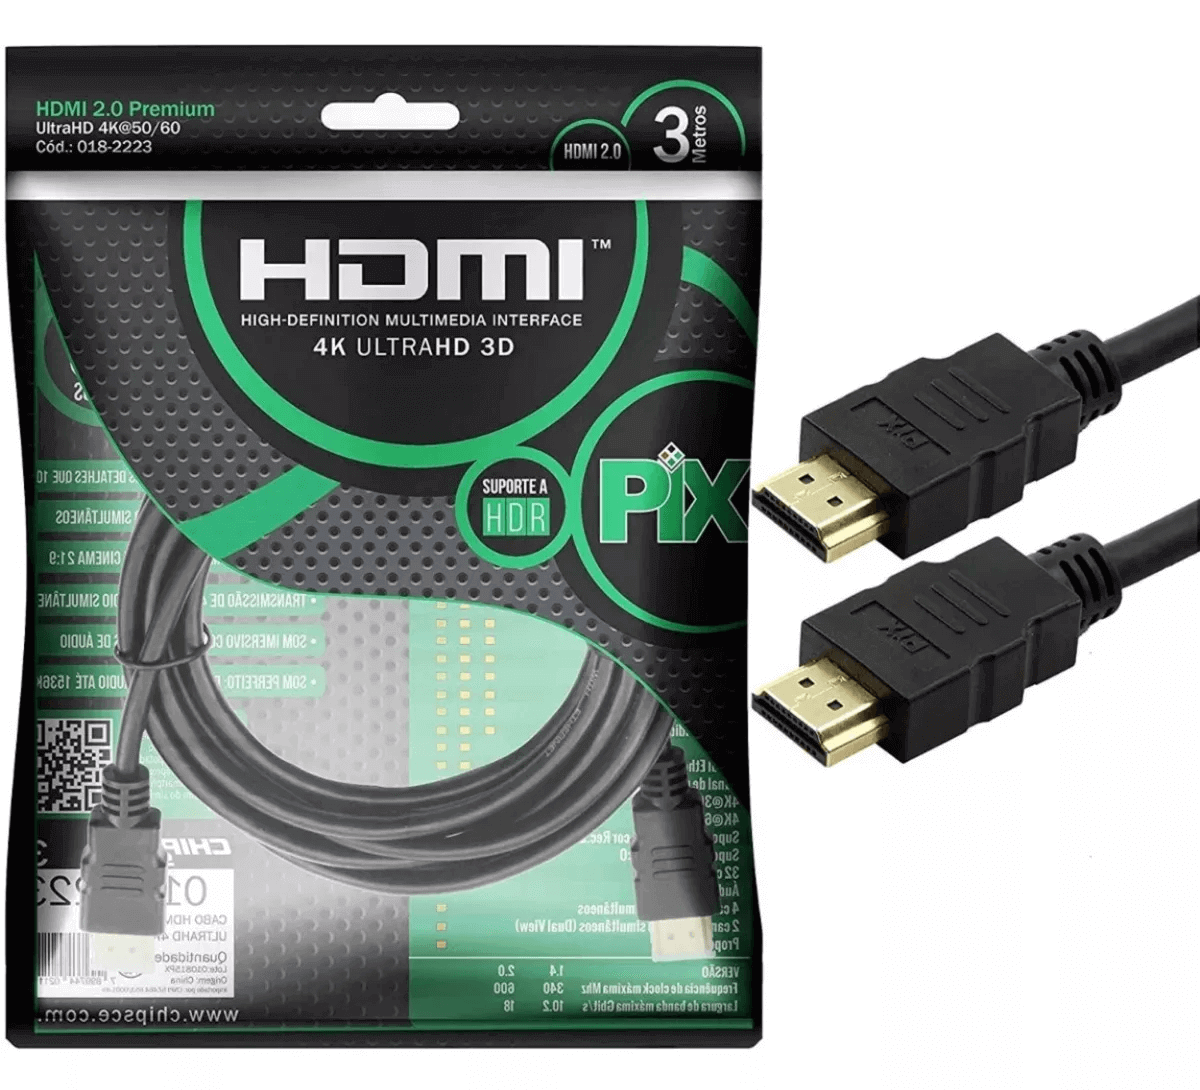 Cabo Hdmi 2.0 4k Hdr 3d 19 Pino 3m Pix Chip Sce 018-2223